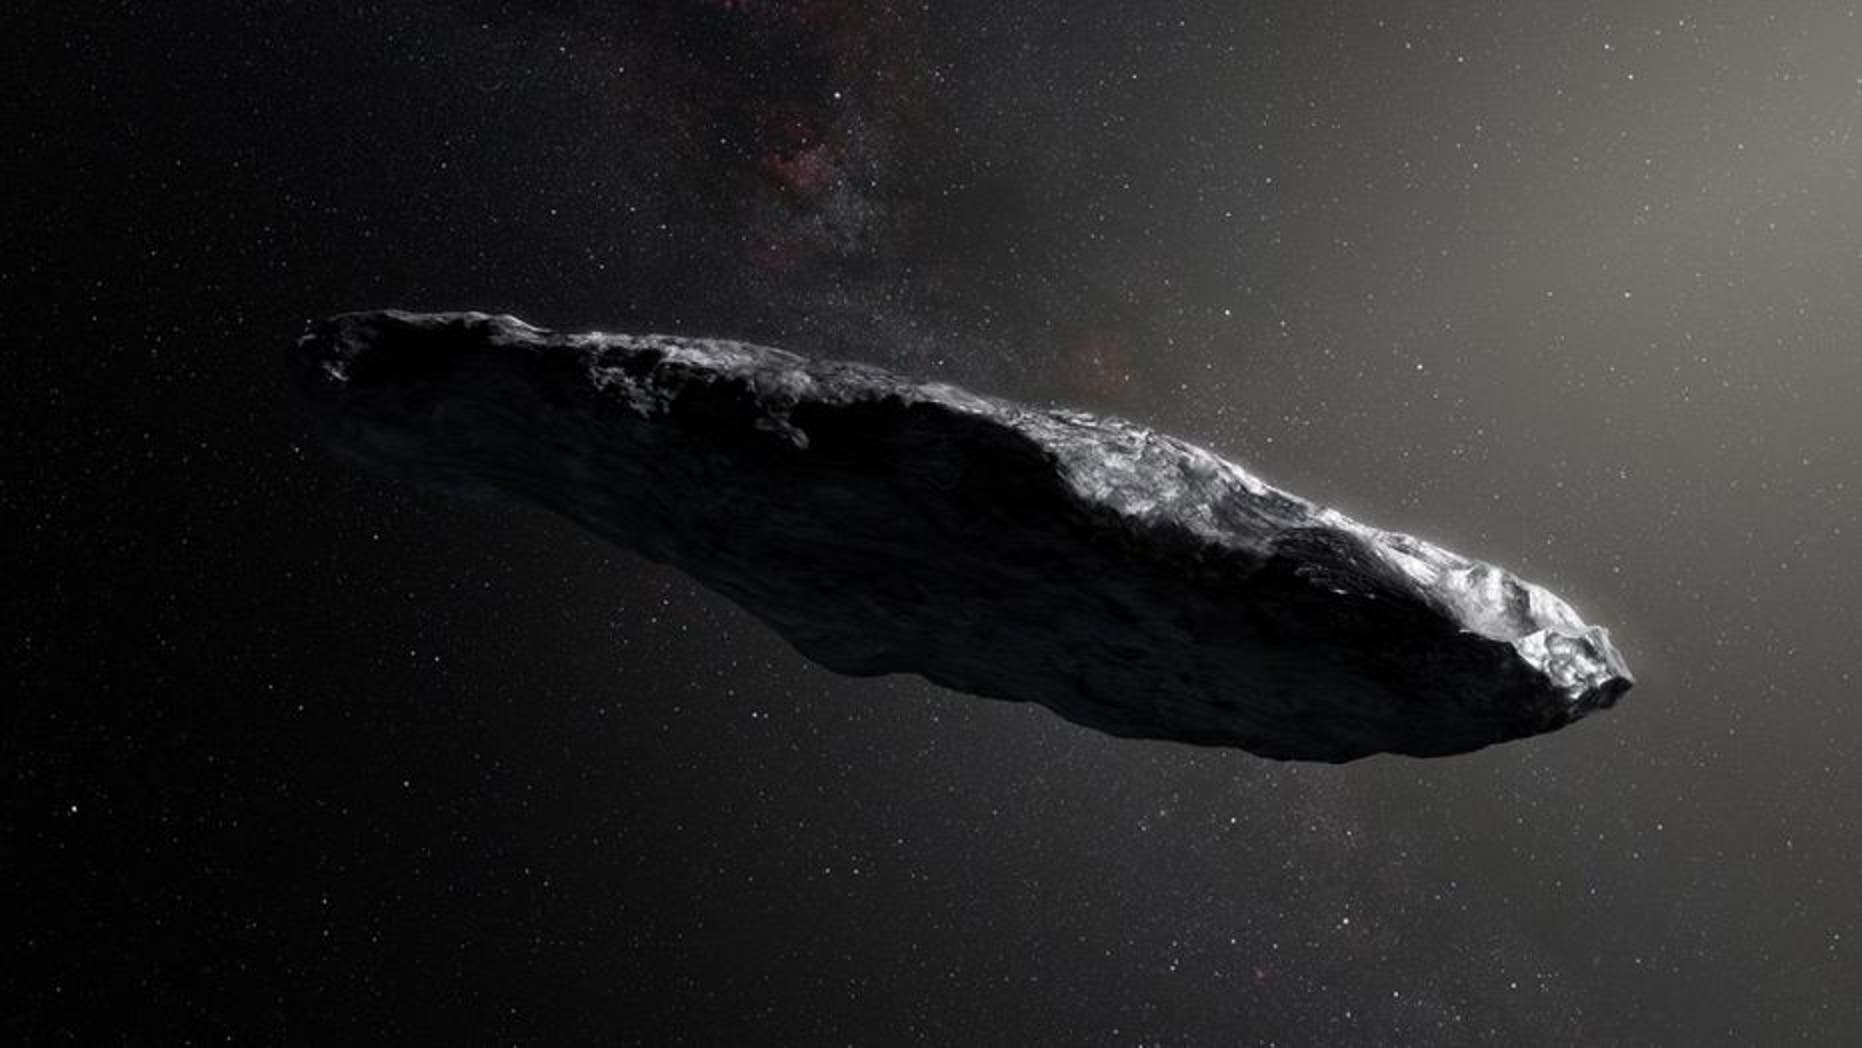 Harvard scientists say mysterious space object may be from 'alien civilization'